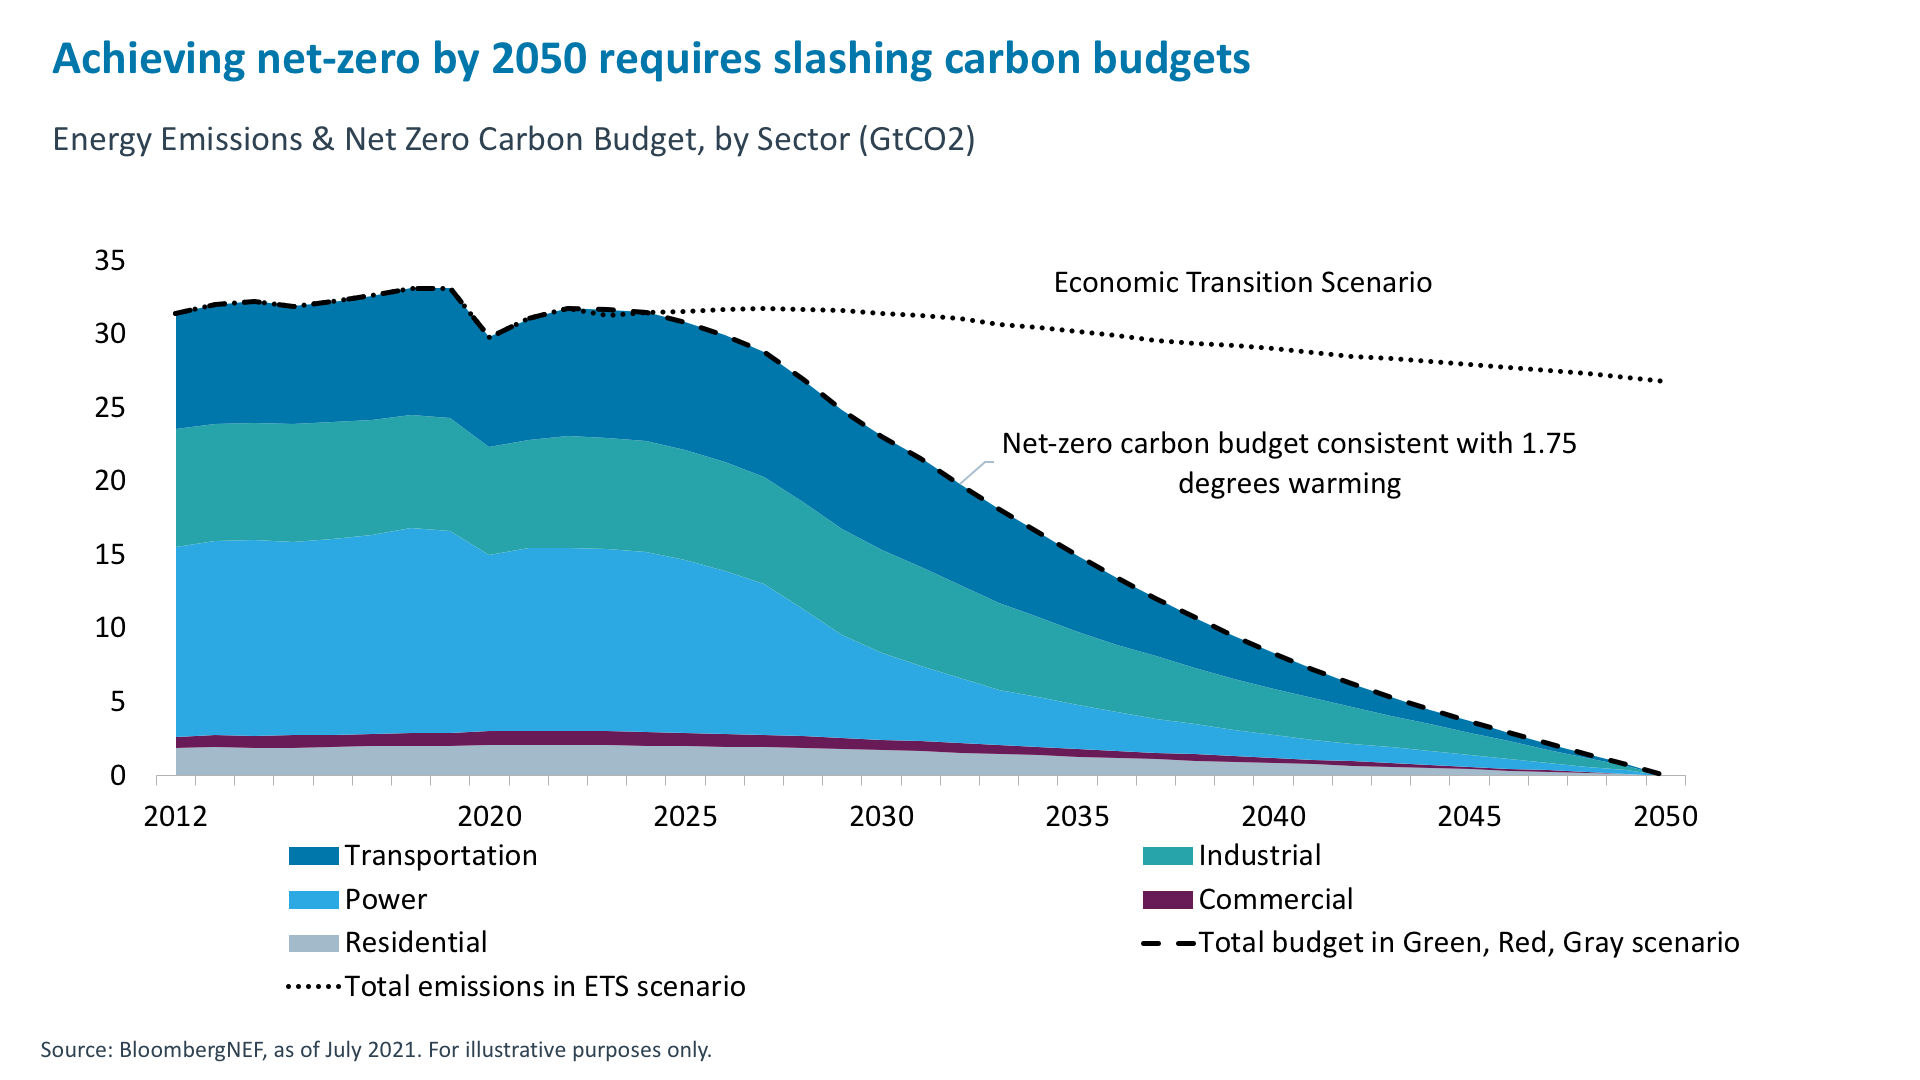 achieving-net-zero-by-2050 requires slashing carbon budgets